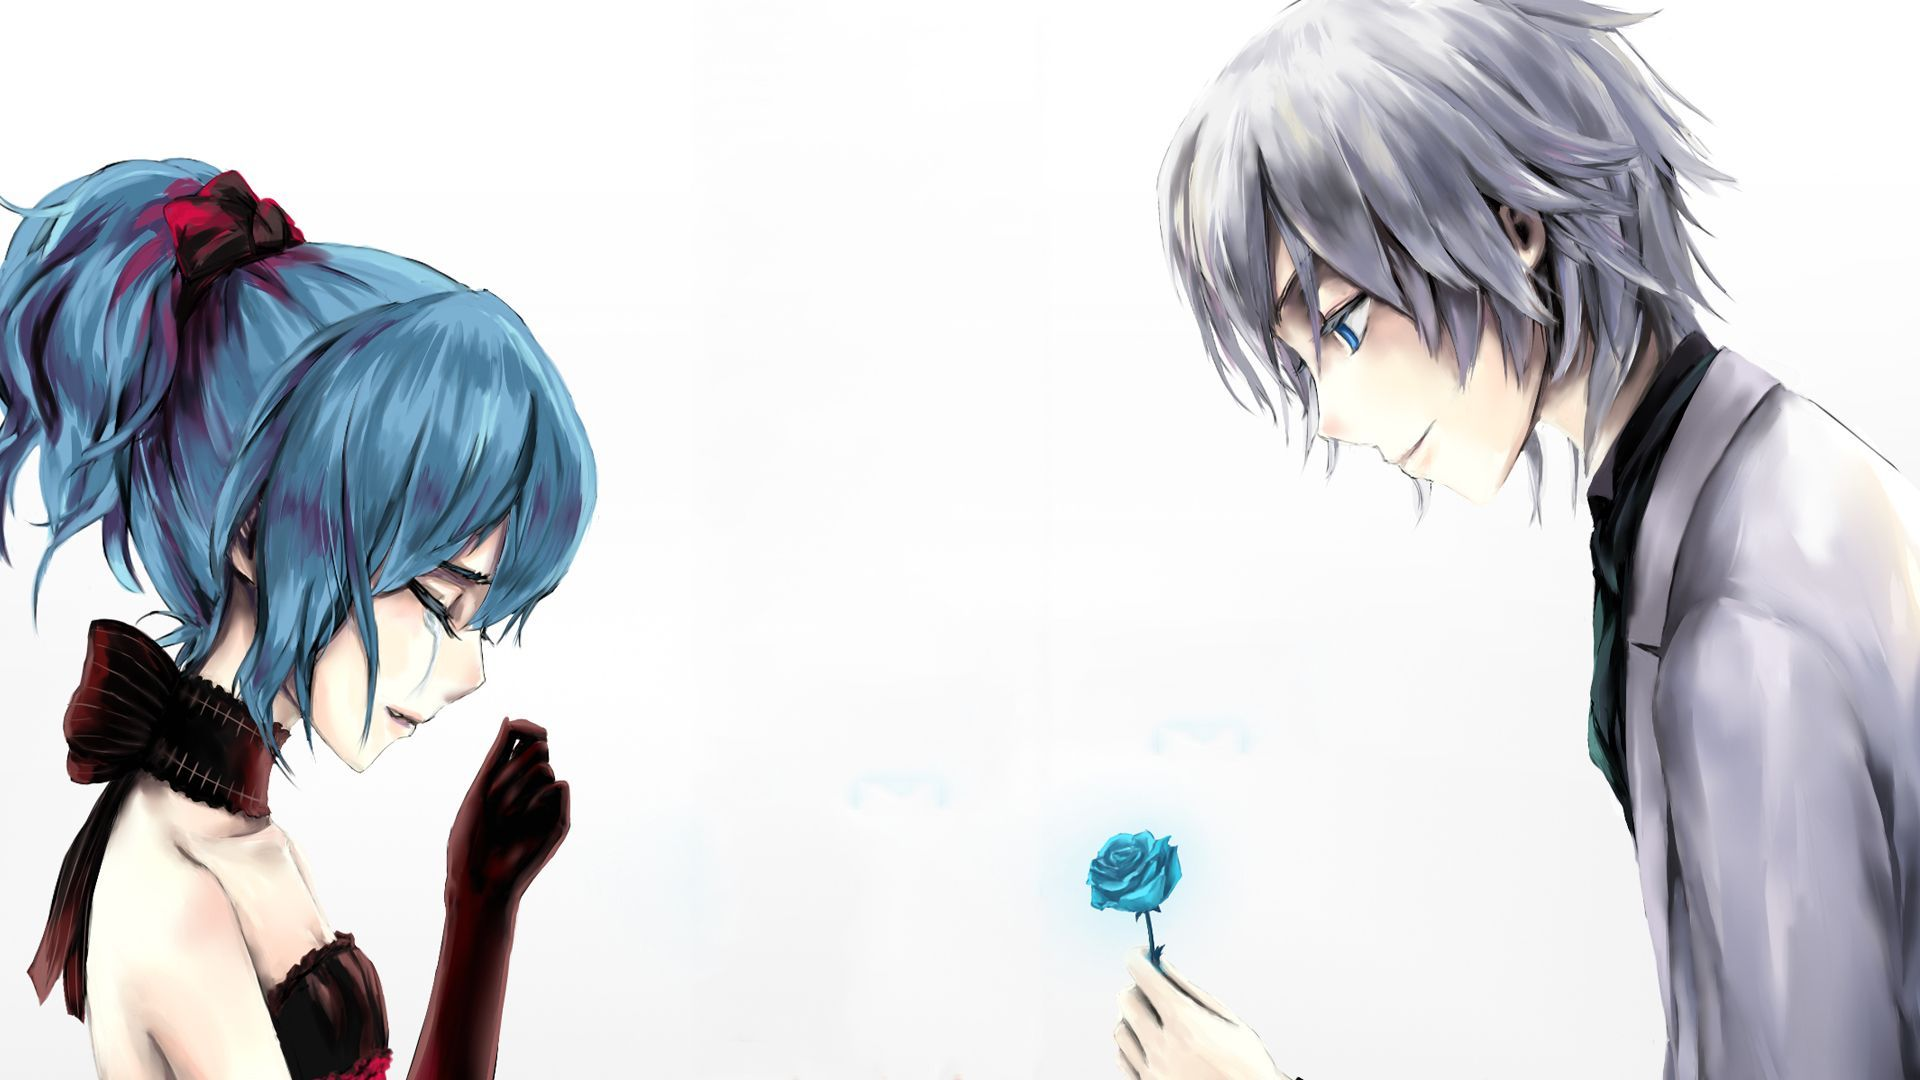 Anime-Love-Couple-Boy-Giving-a-Rose-to-Girl-Crying-Wallpaper